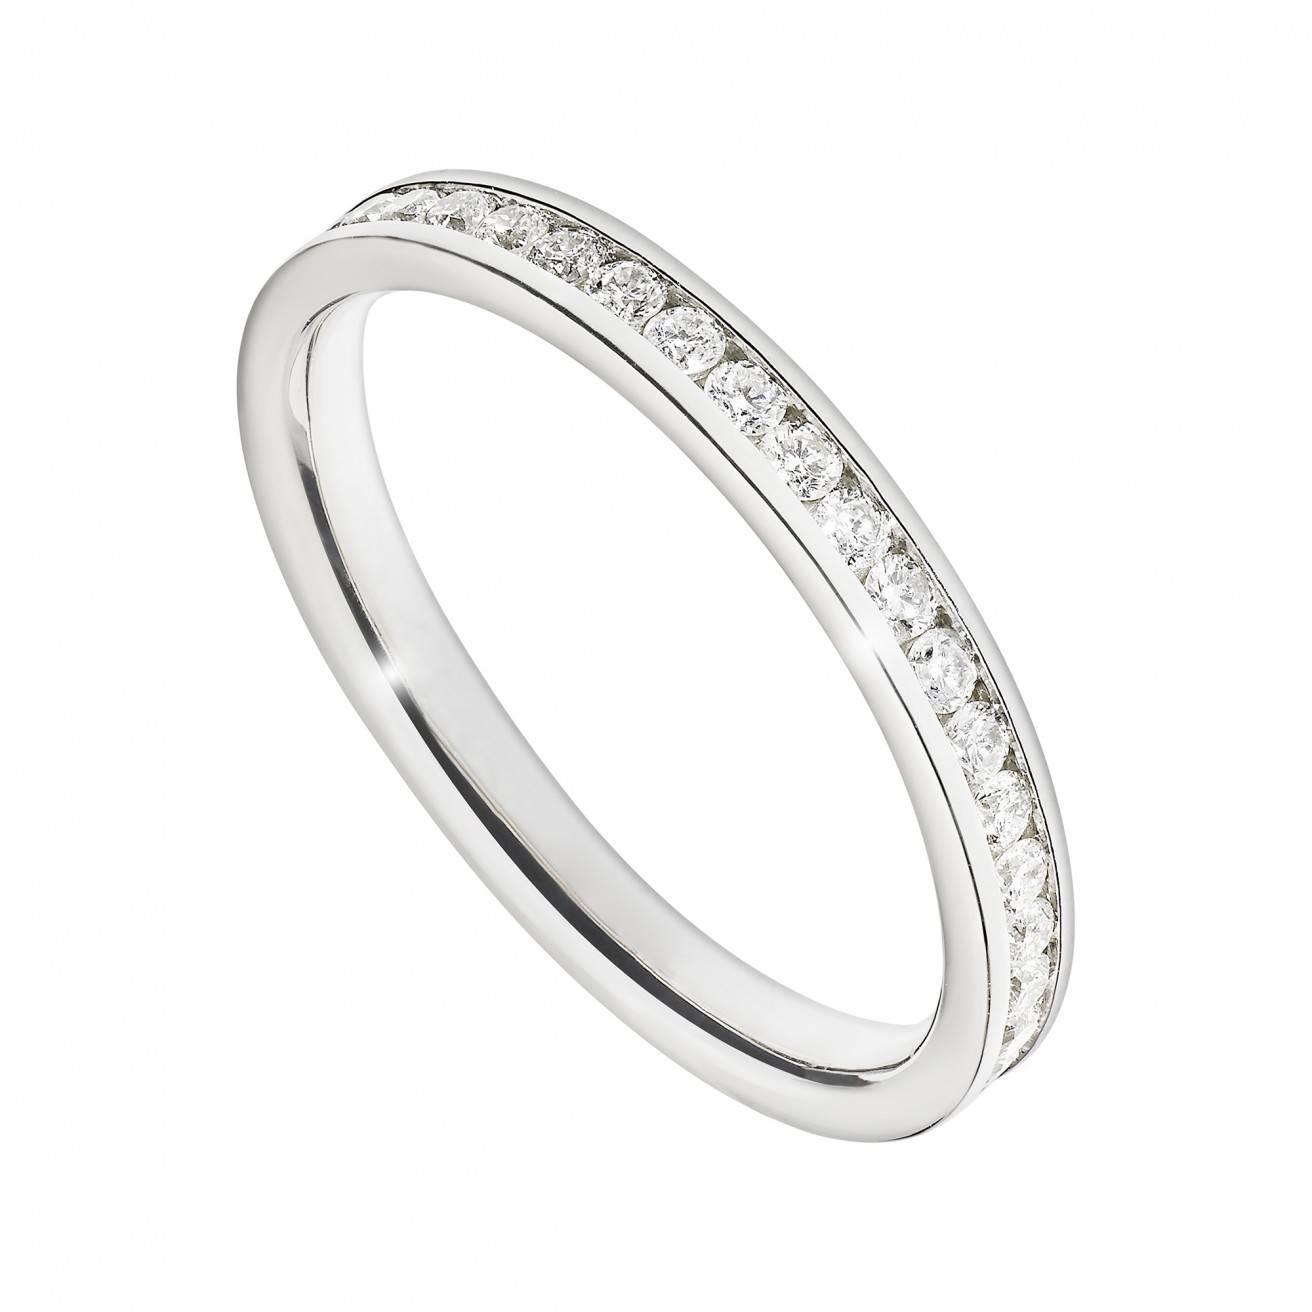 Buy Platinum Wedding Bands Online – Fraser Hart Intended For Diamond And Platinum Wedding Rings (View 5 of 15)